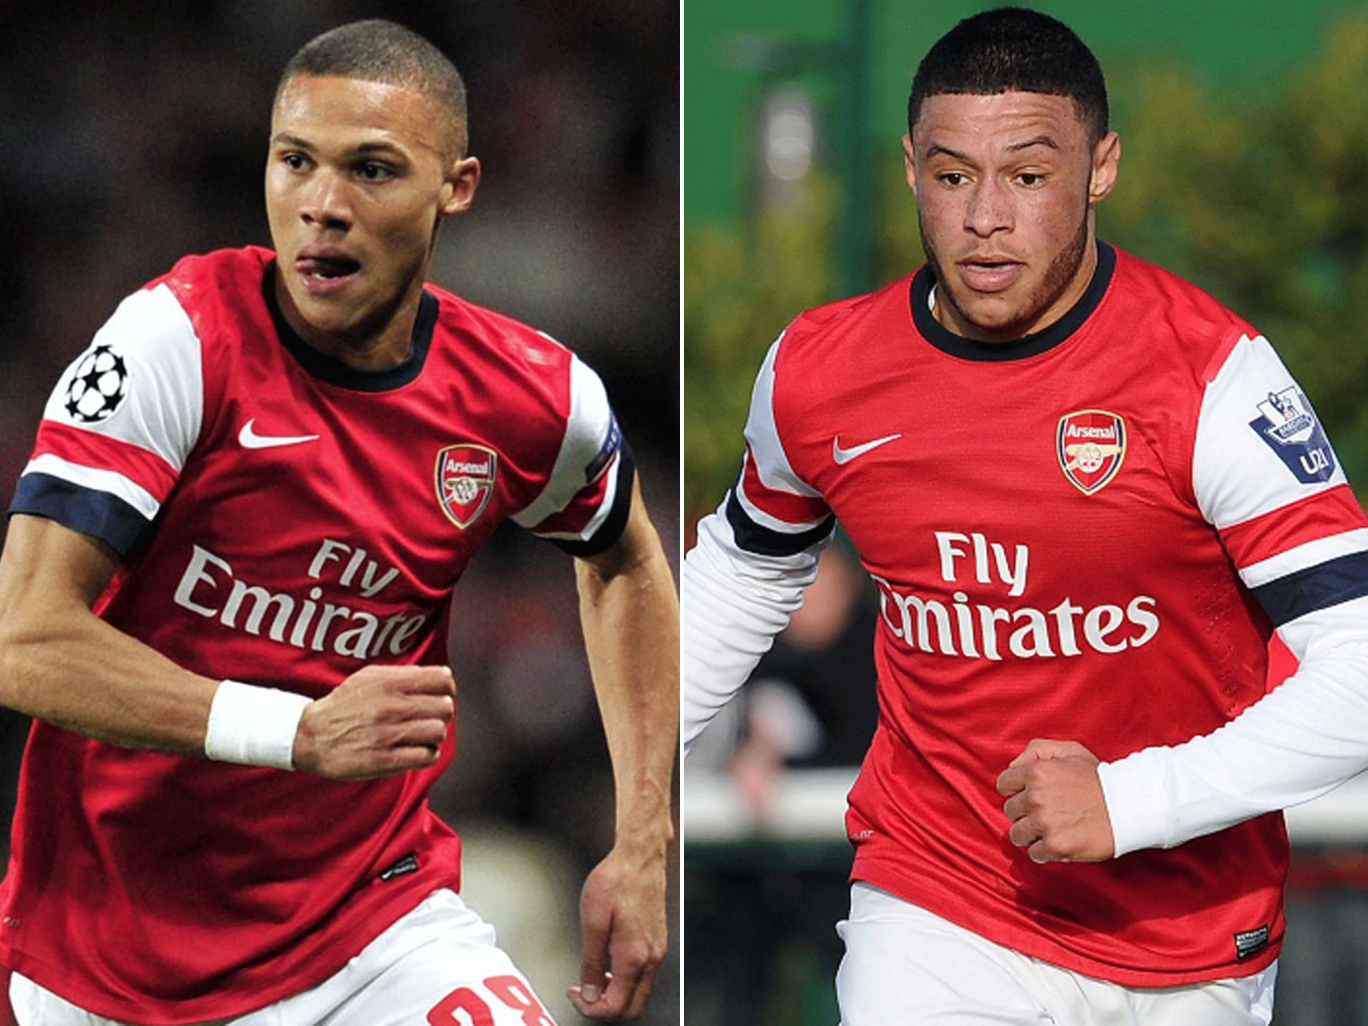 No ban for either Kieran Gibbs (left) or Alex Oxlade-Chamberlain over wrong red card